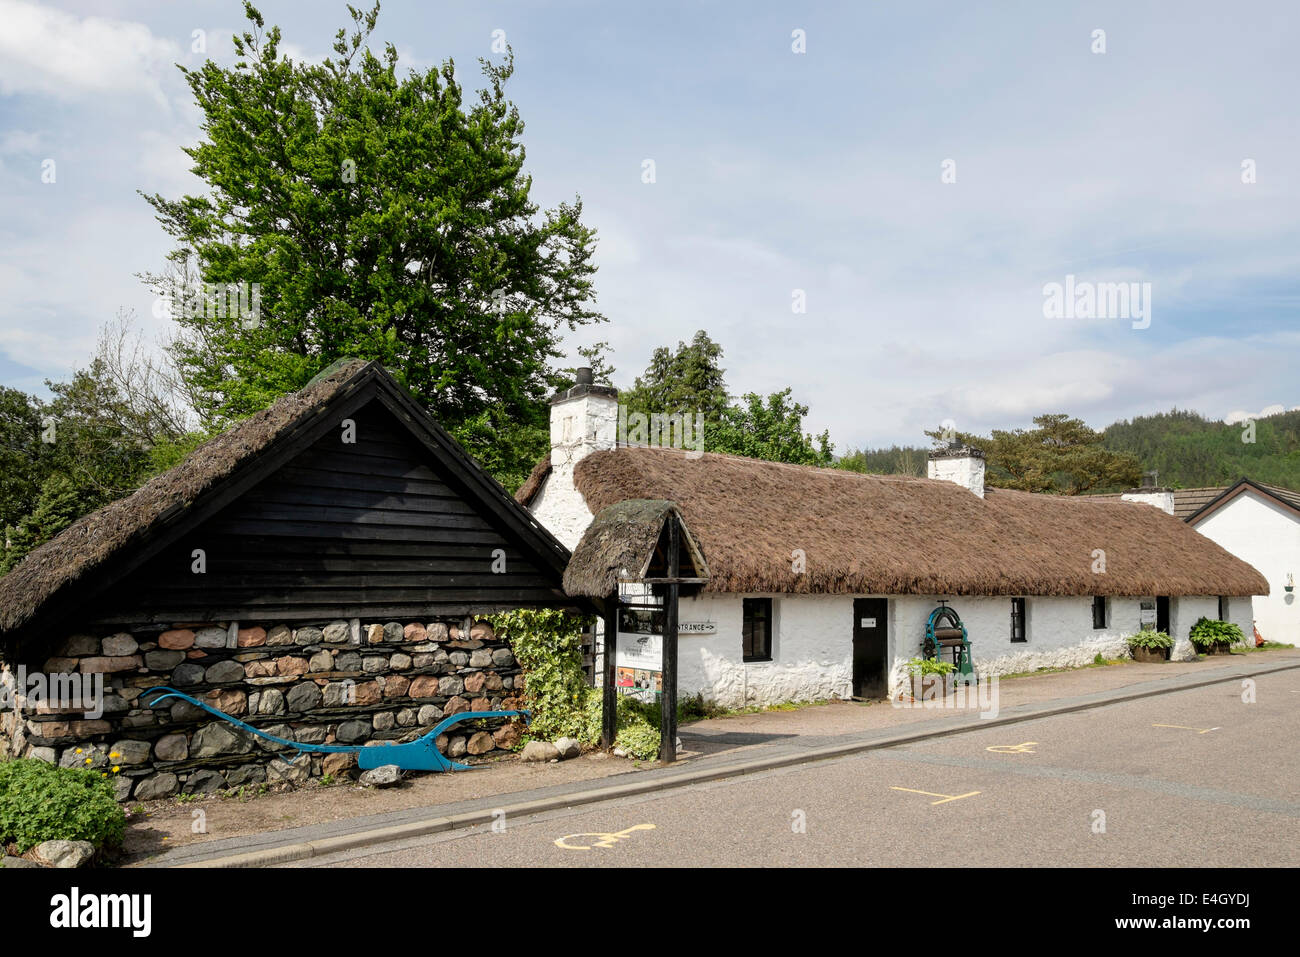 Glencoe and North Lorn Folk Museum in old thatched building in village. Glencoe, Highland, Scotland, UK, Britain - Stock Image